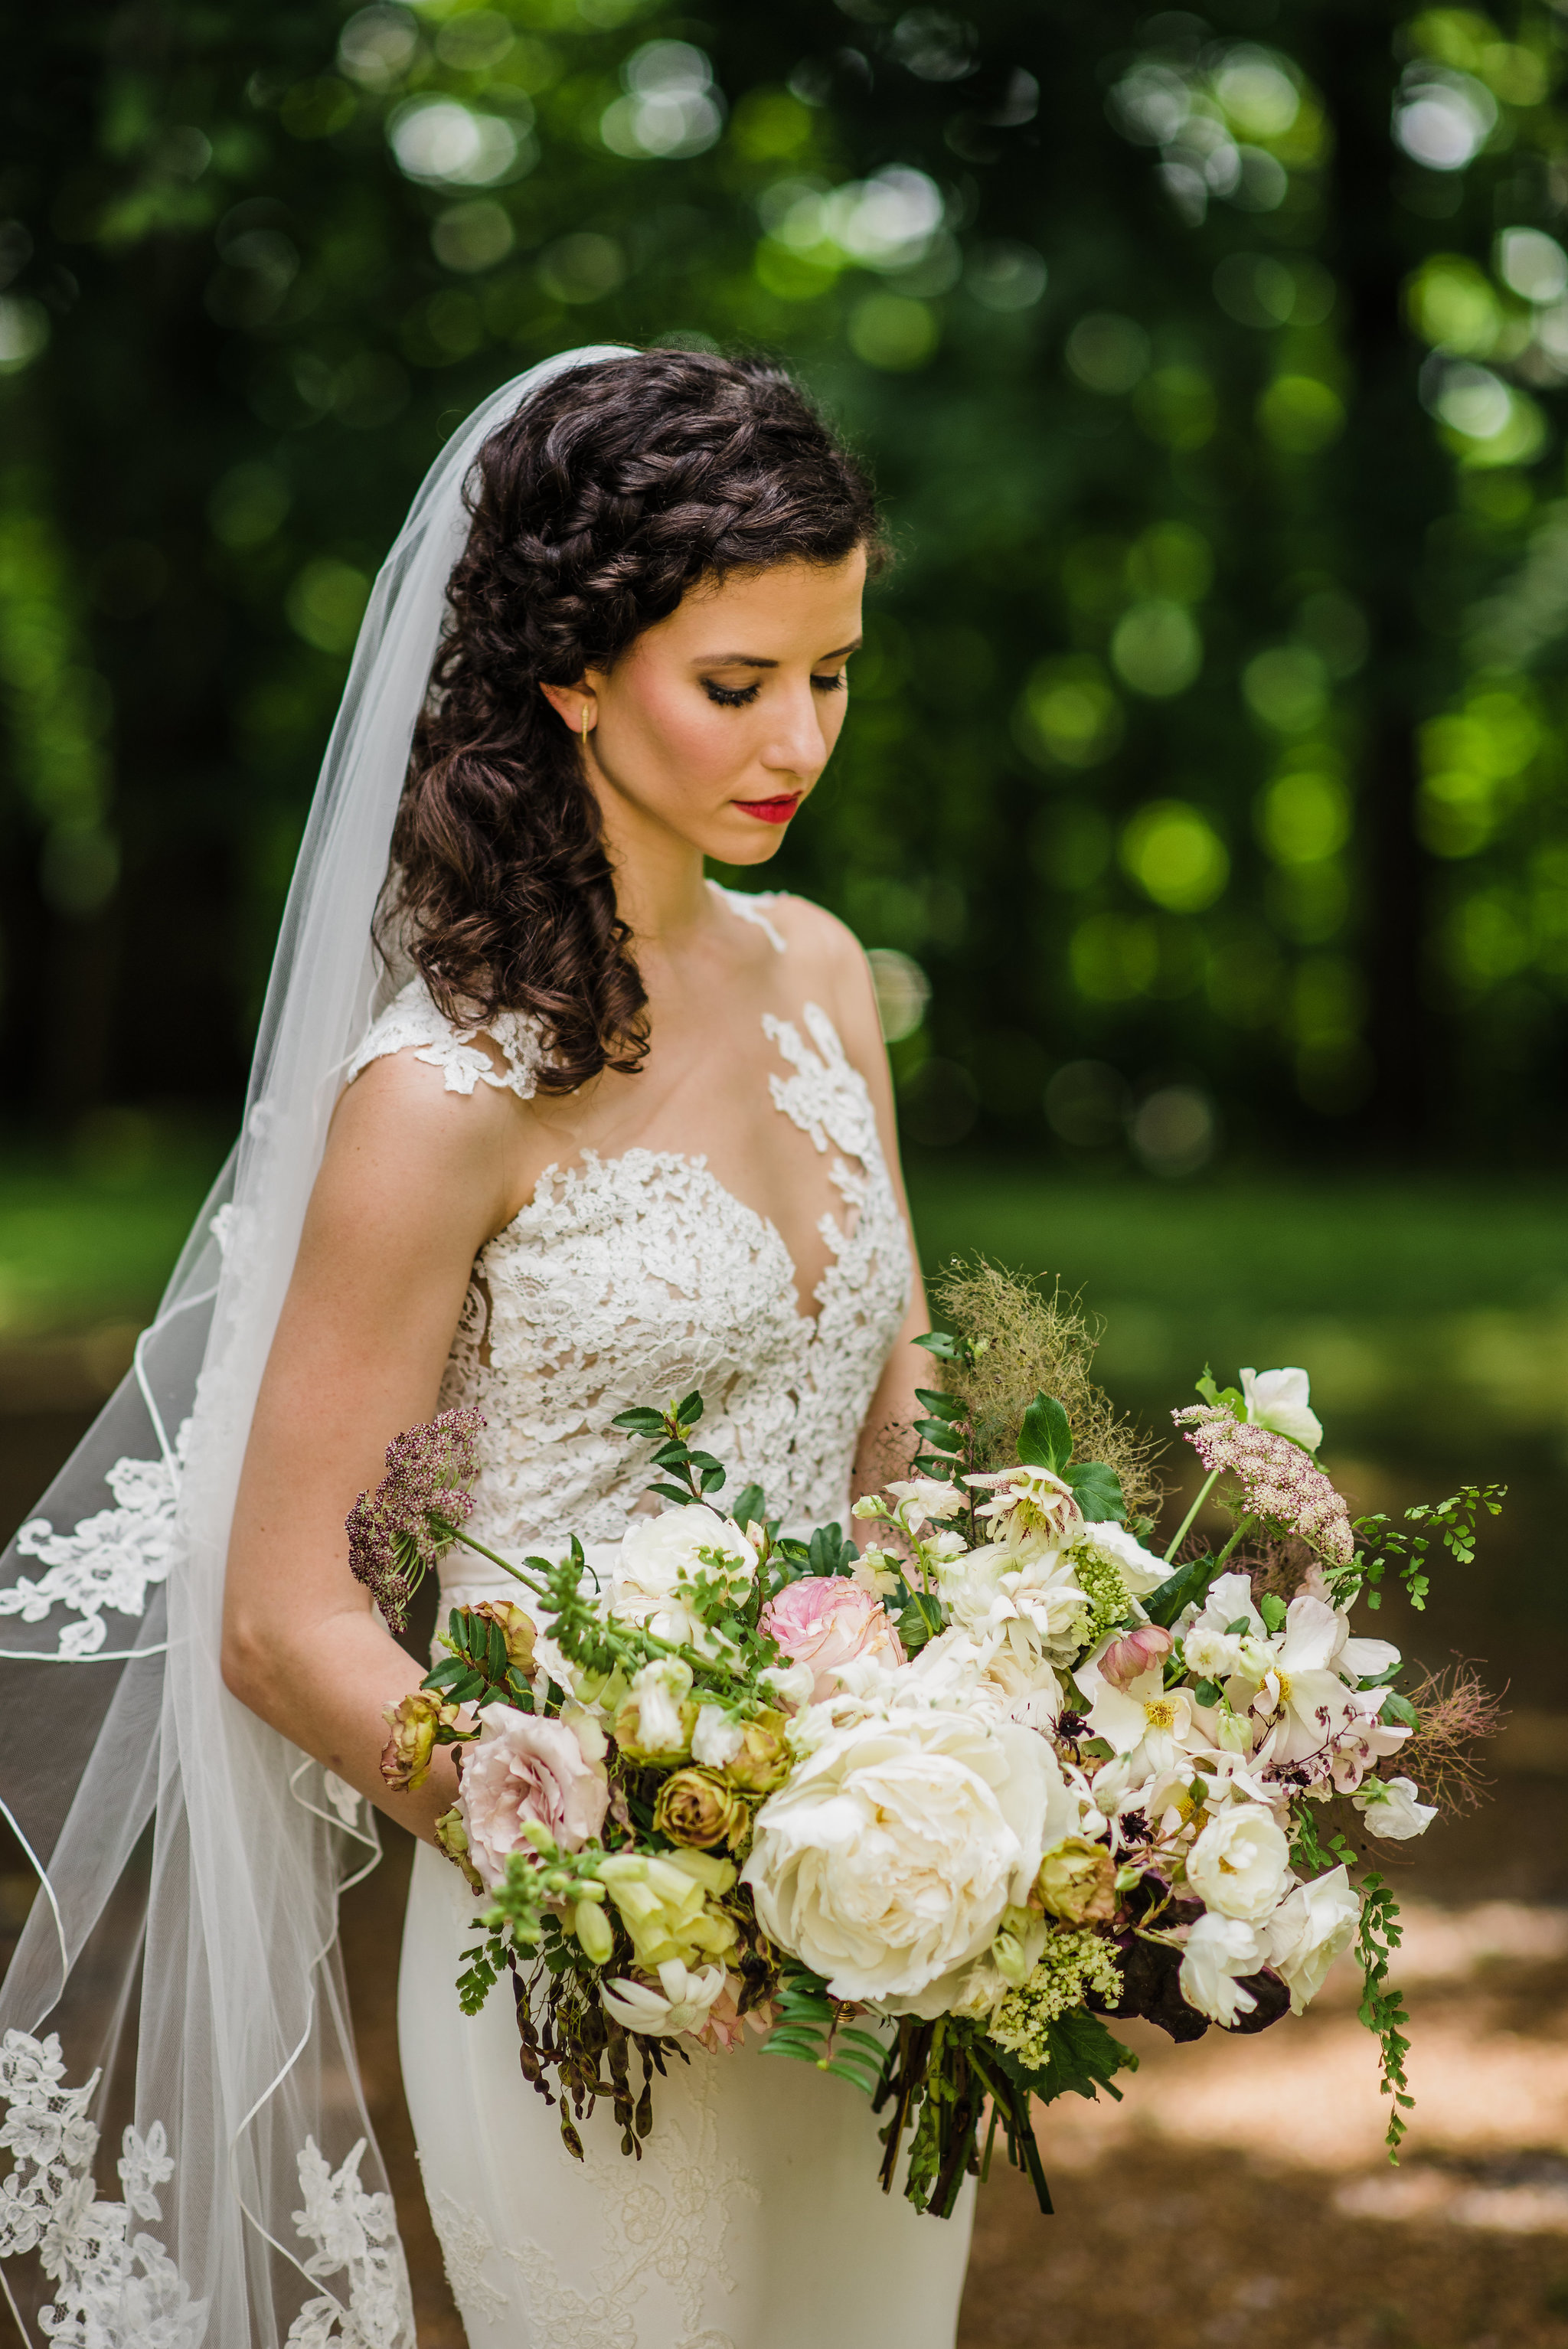 Organic, airy bridal bouquet with peonies, garden roses, greenery and lush textures // Nashville Wedding Florist